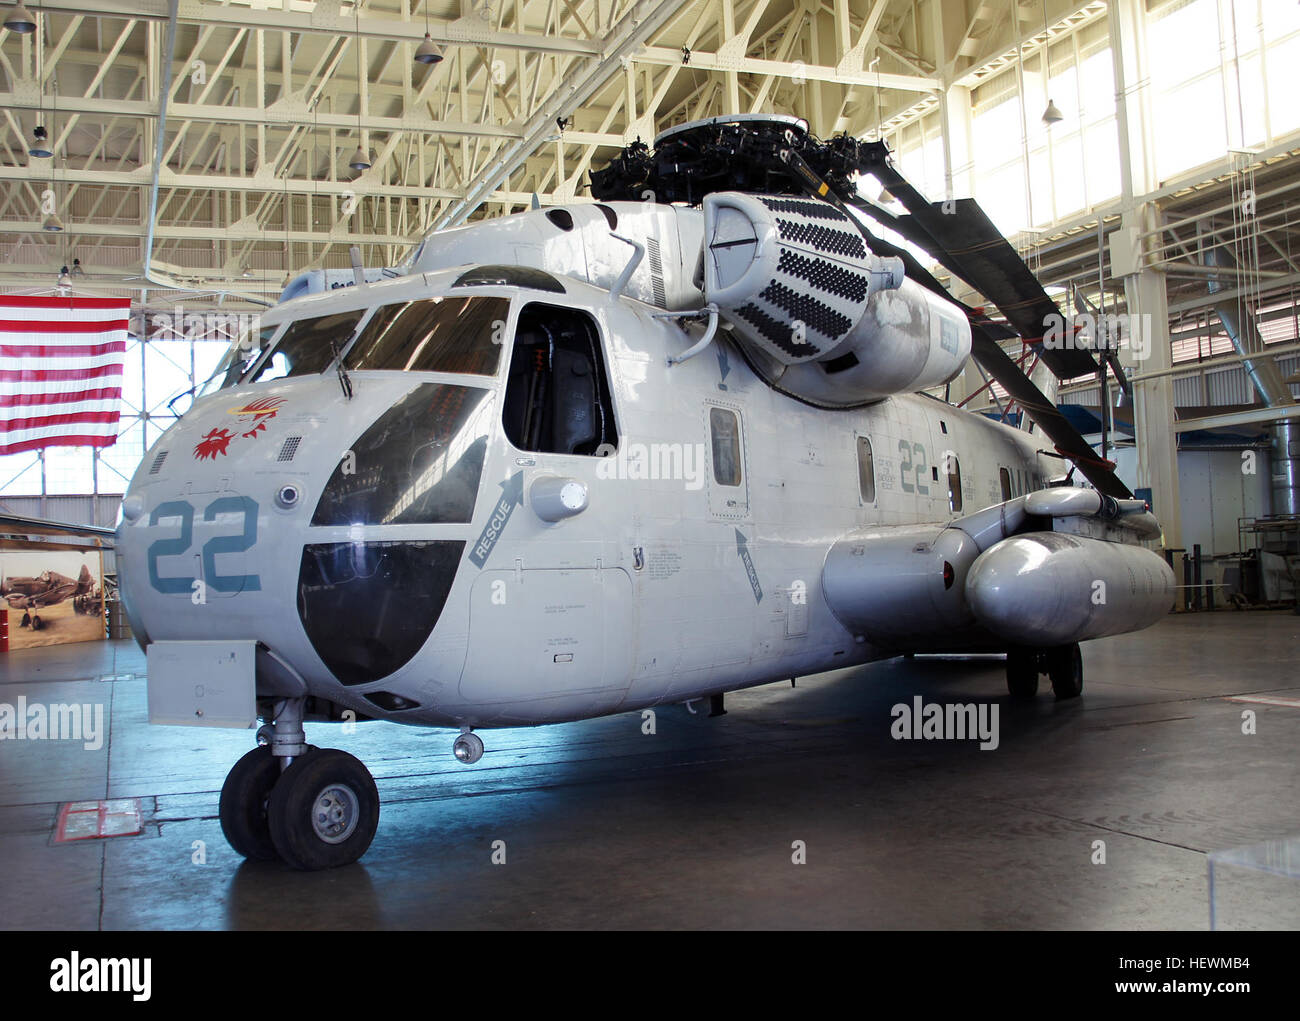 The CH-53 helicopter is the more powerful younger brother of the Jolly Green Giant H-3—and one of the largest helicopters - Stock Image